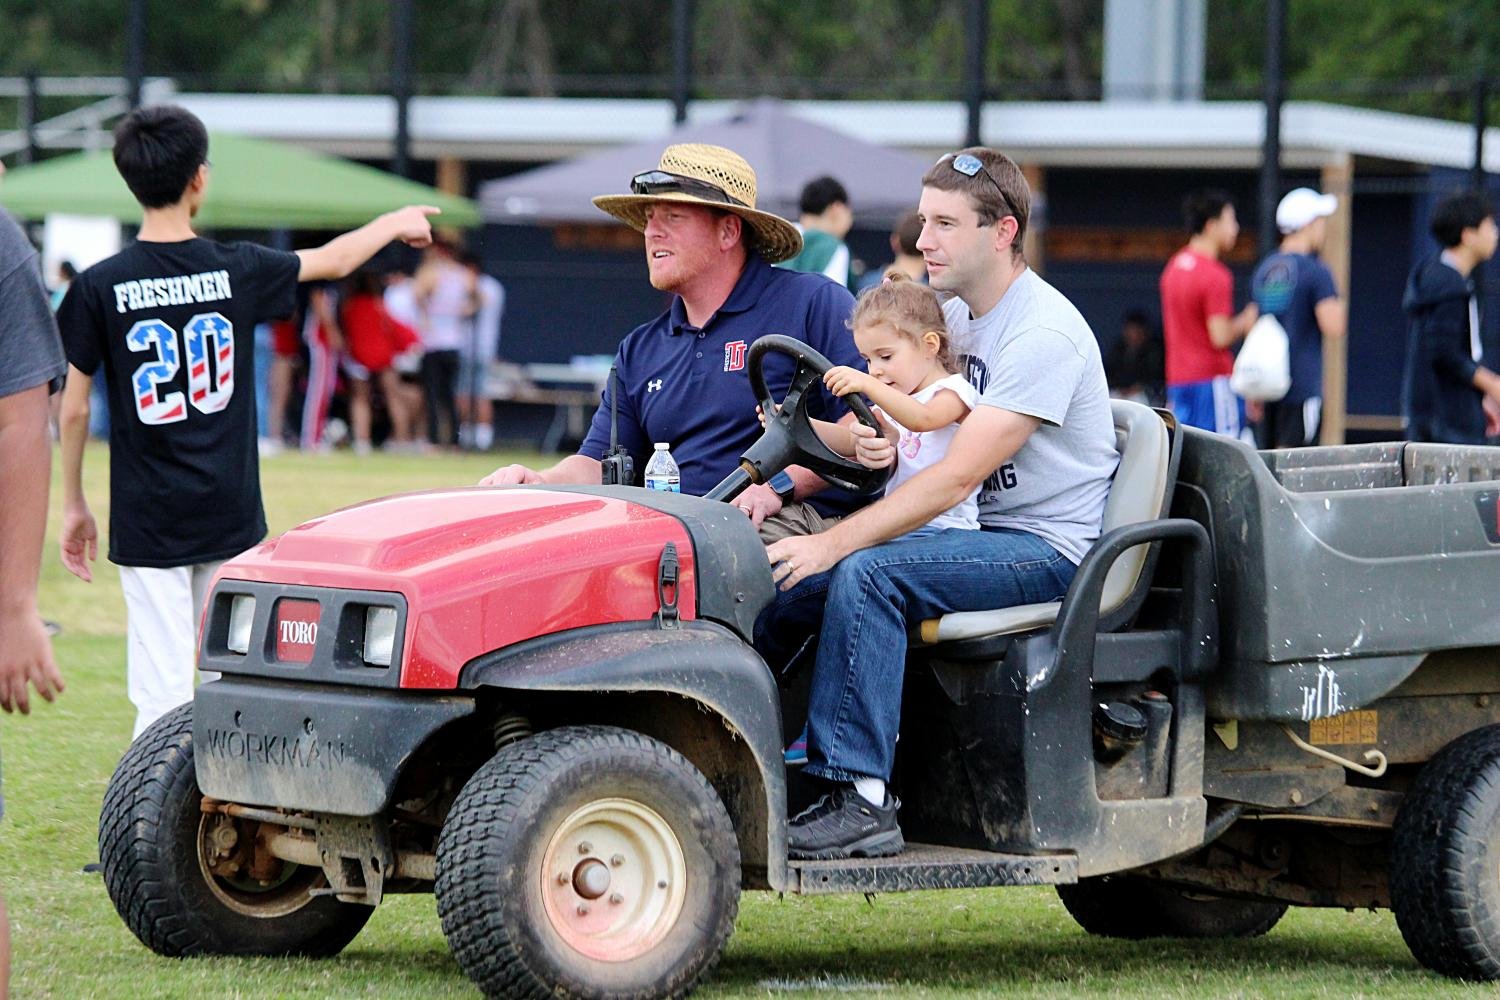 David Gardzel and Clint Behling drive around the Back-to-School Bash with Behling's daughter.